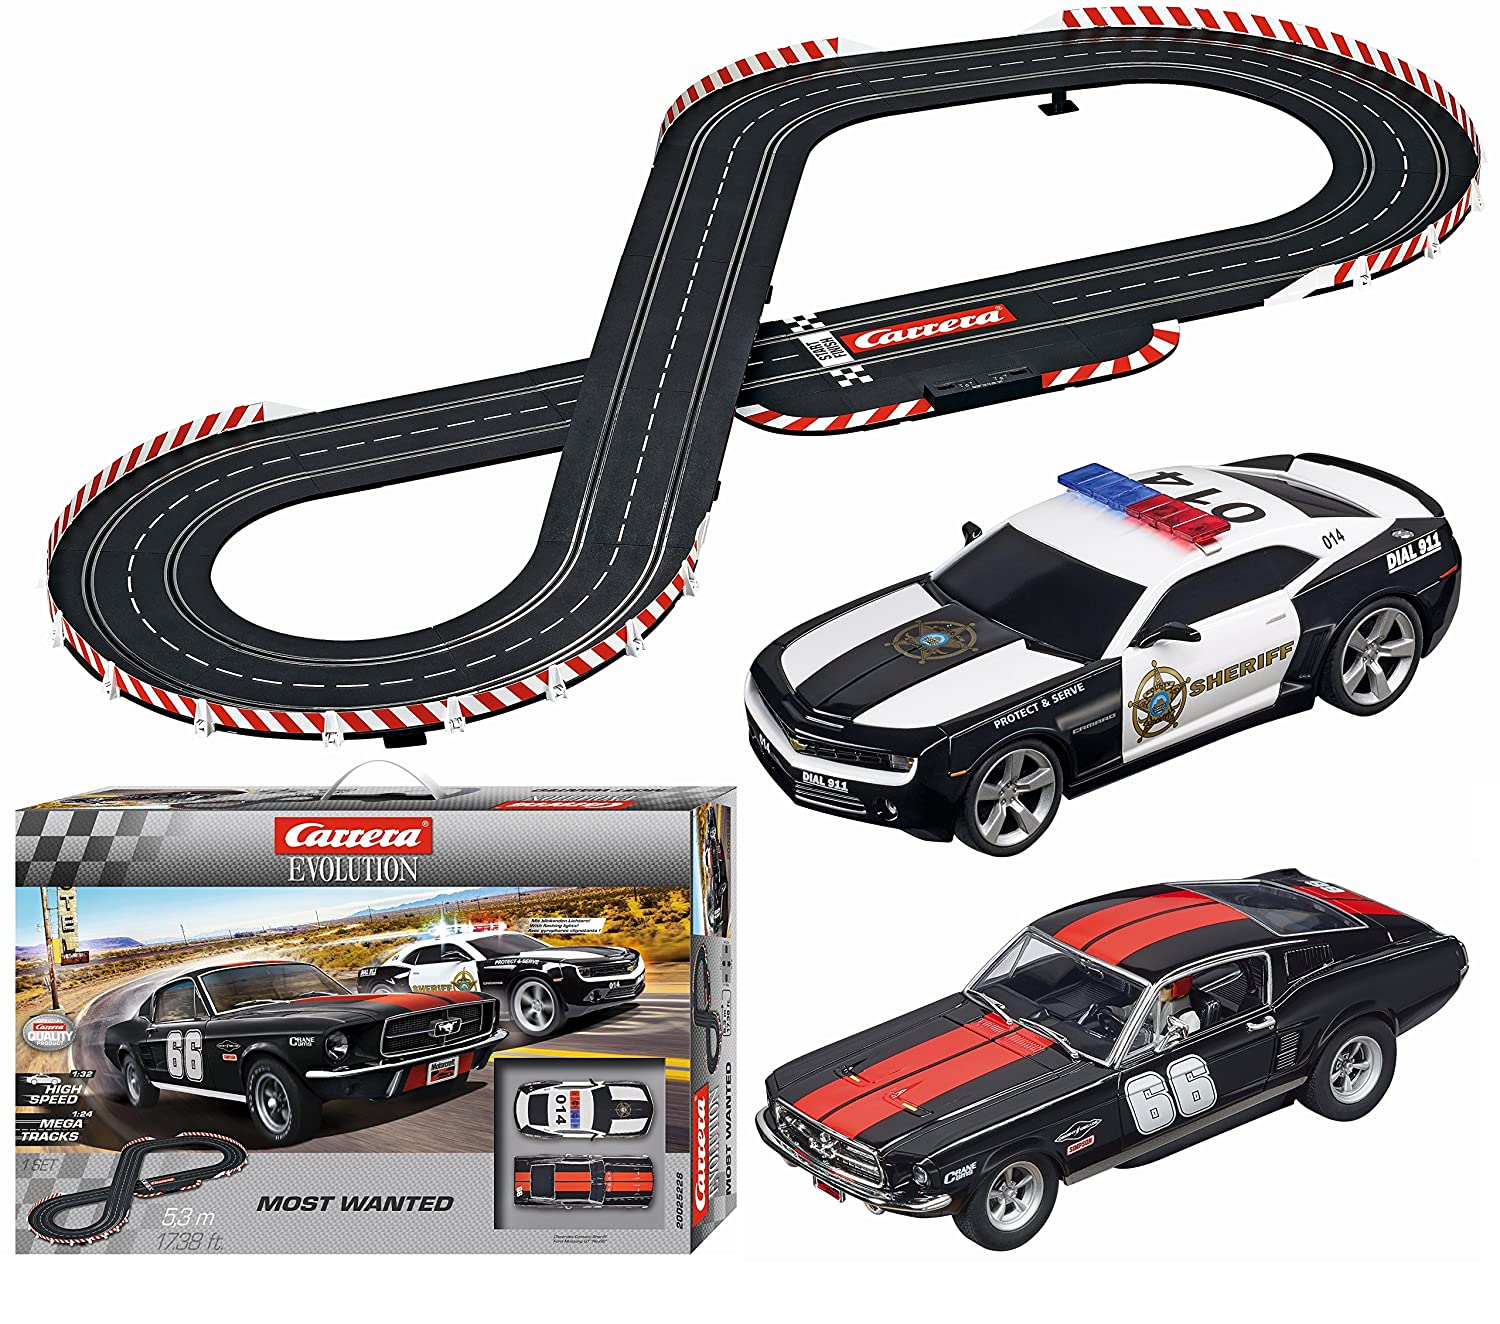 marca famosa Carrera Evolution Evolution Evolution Most Wanted Circuito de Coches, 1:32 Scale (20025228)  mejor marca